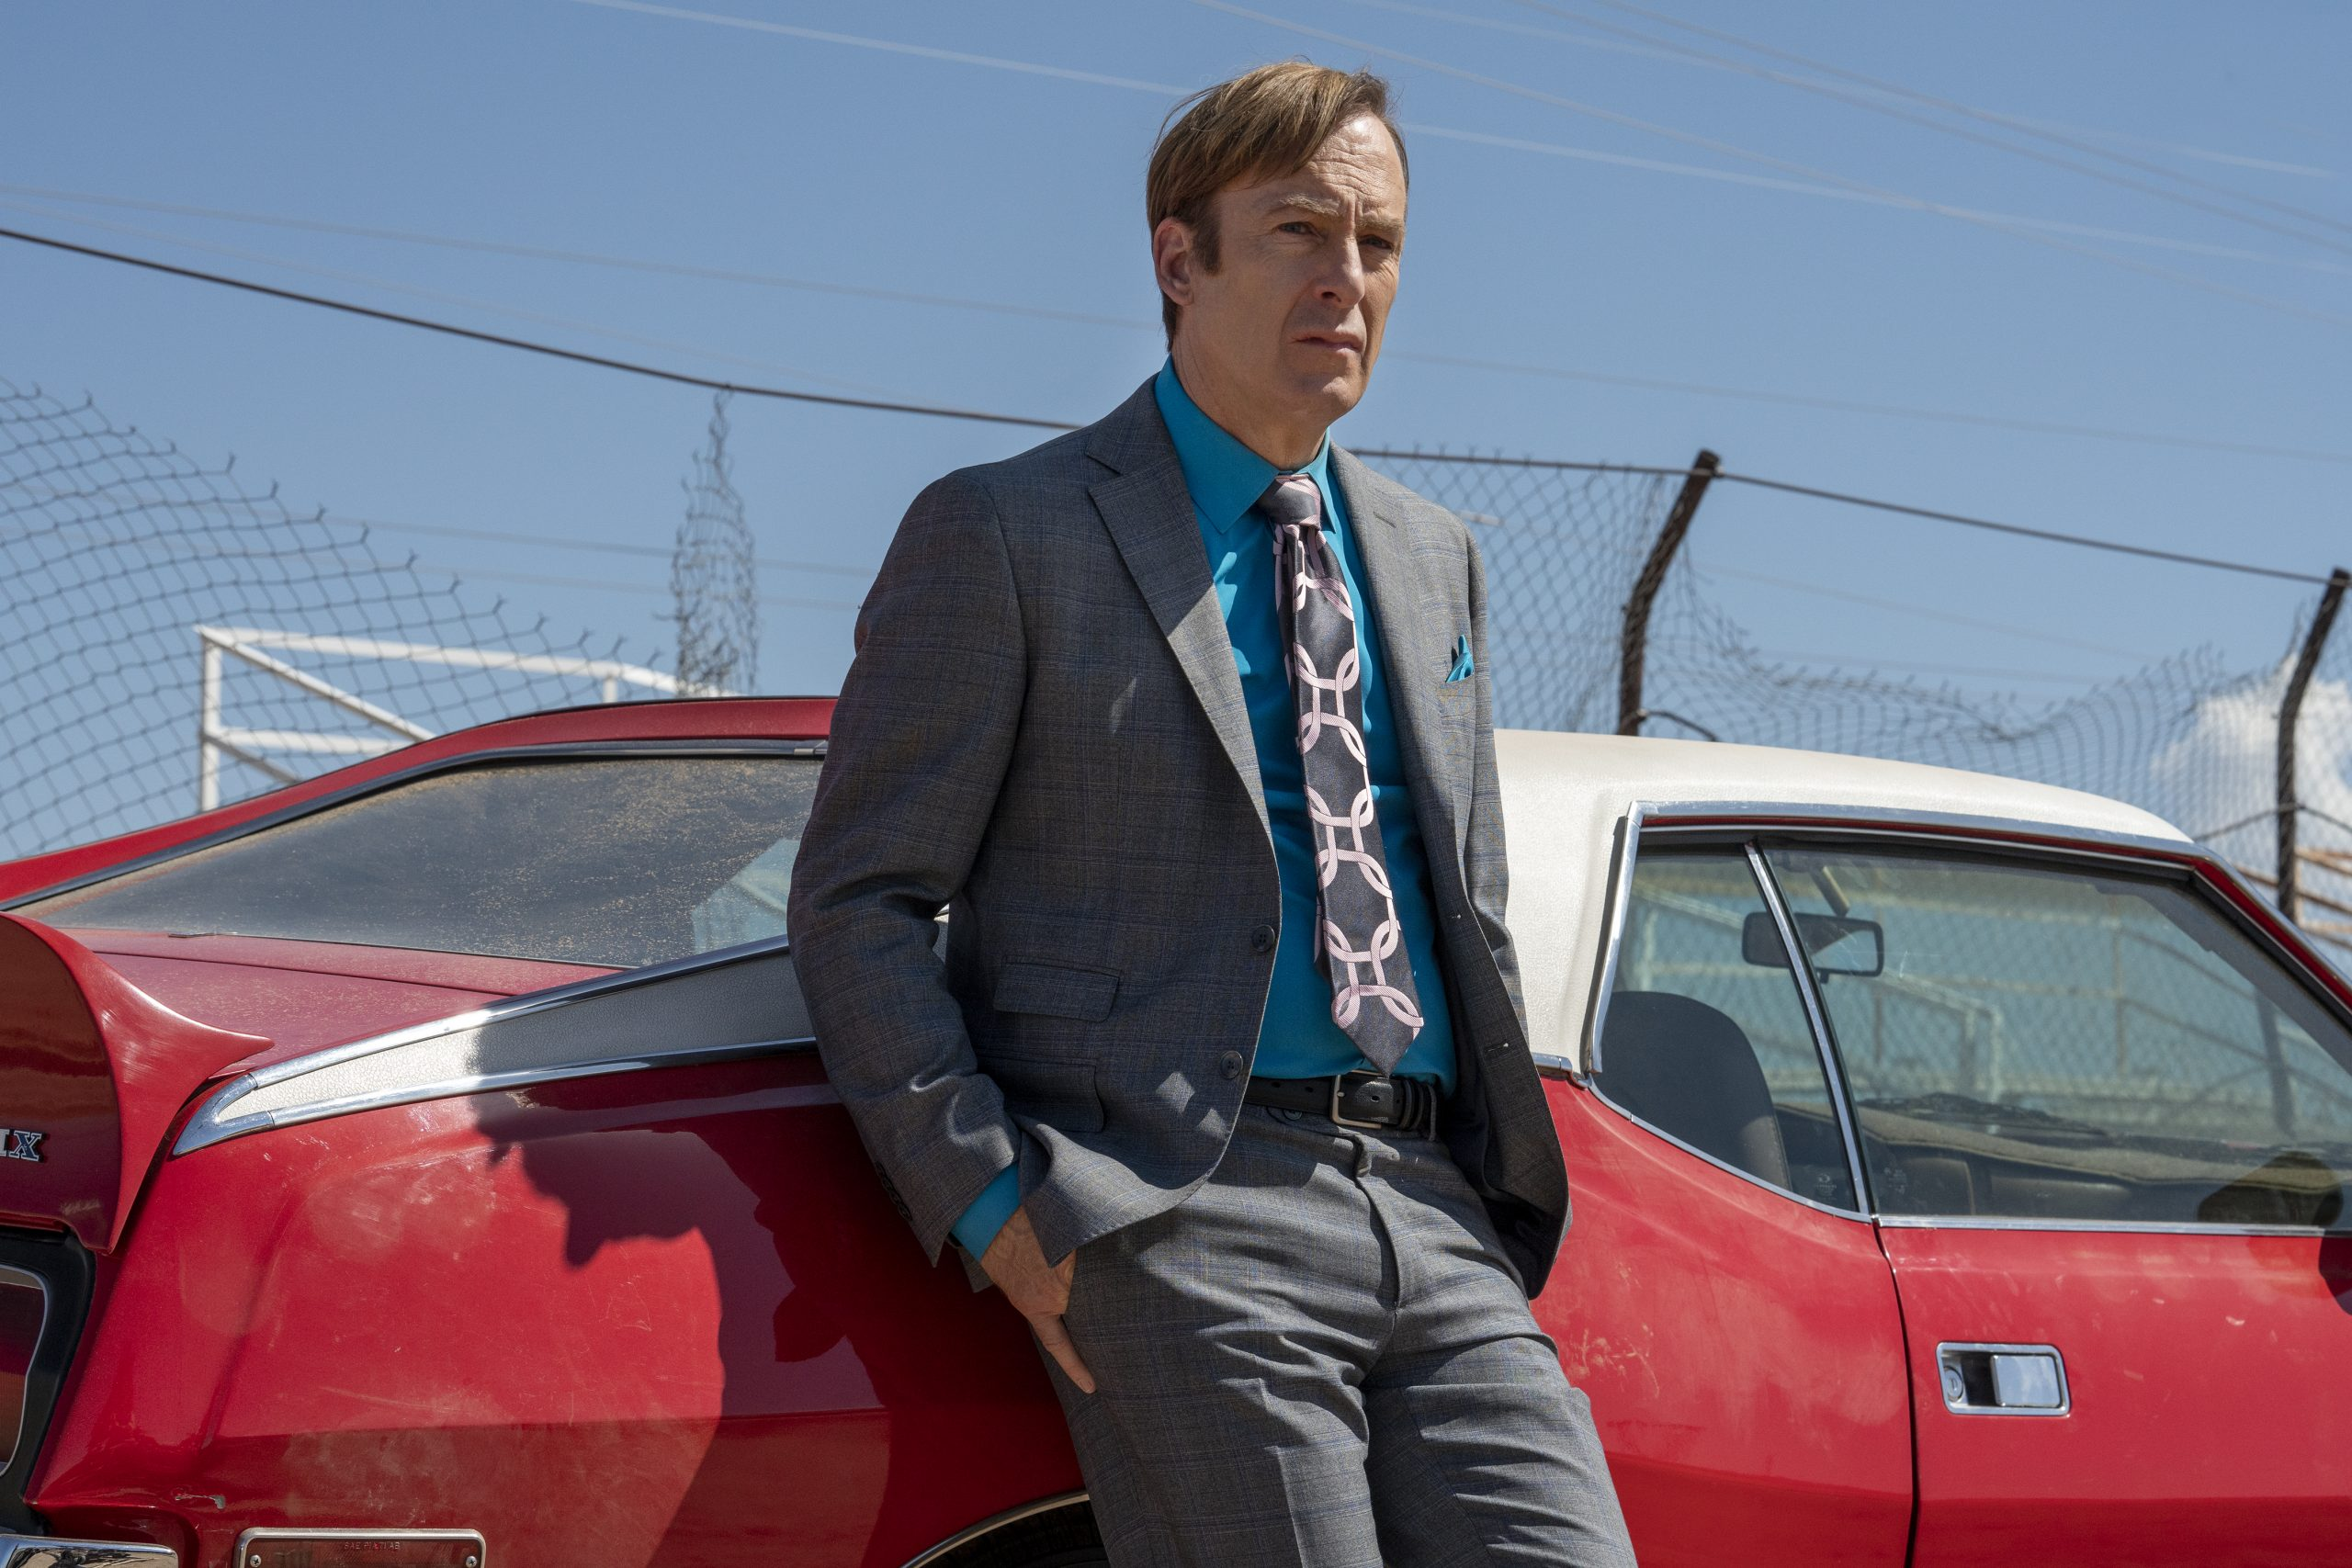 Nostalgia! New Better Call Saul Episode Shows Off Hank's Return